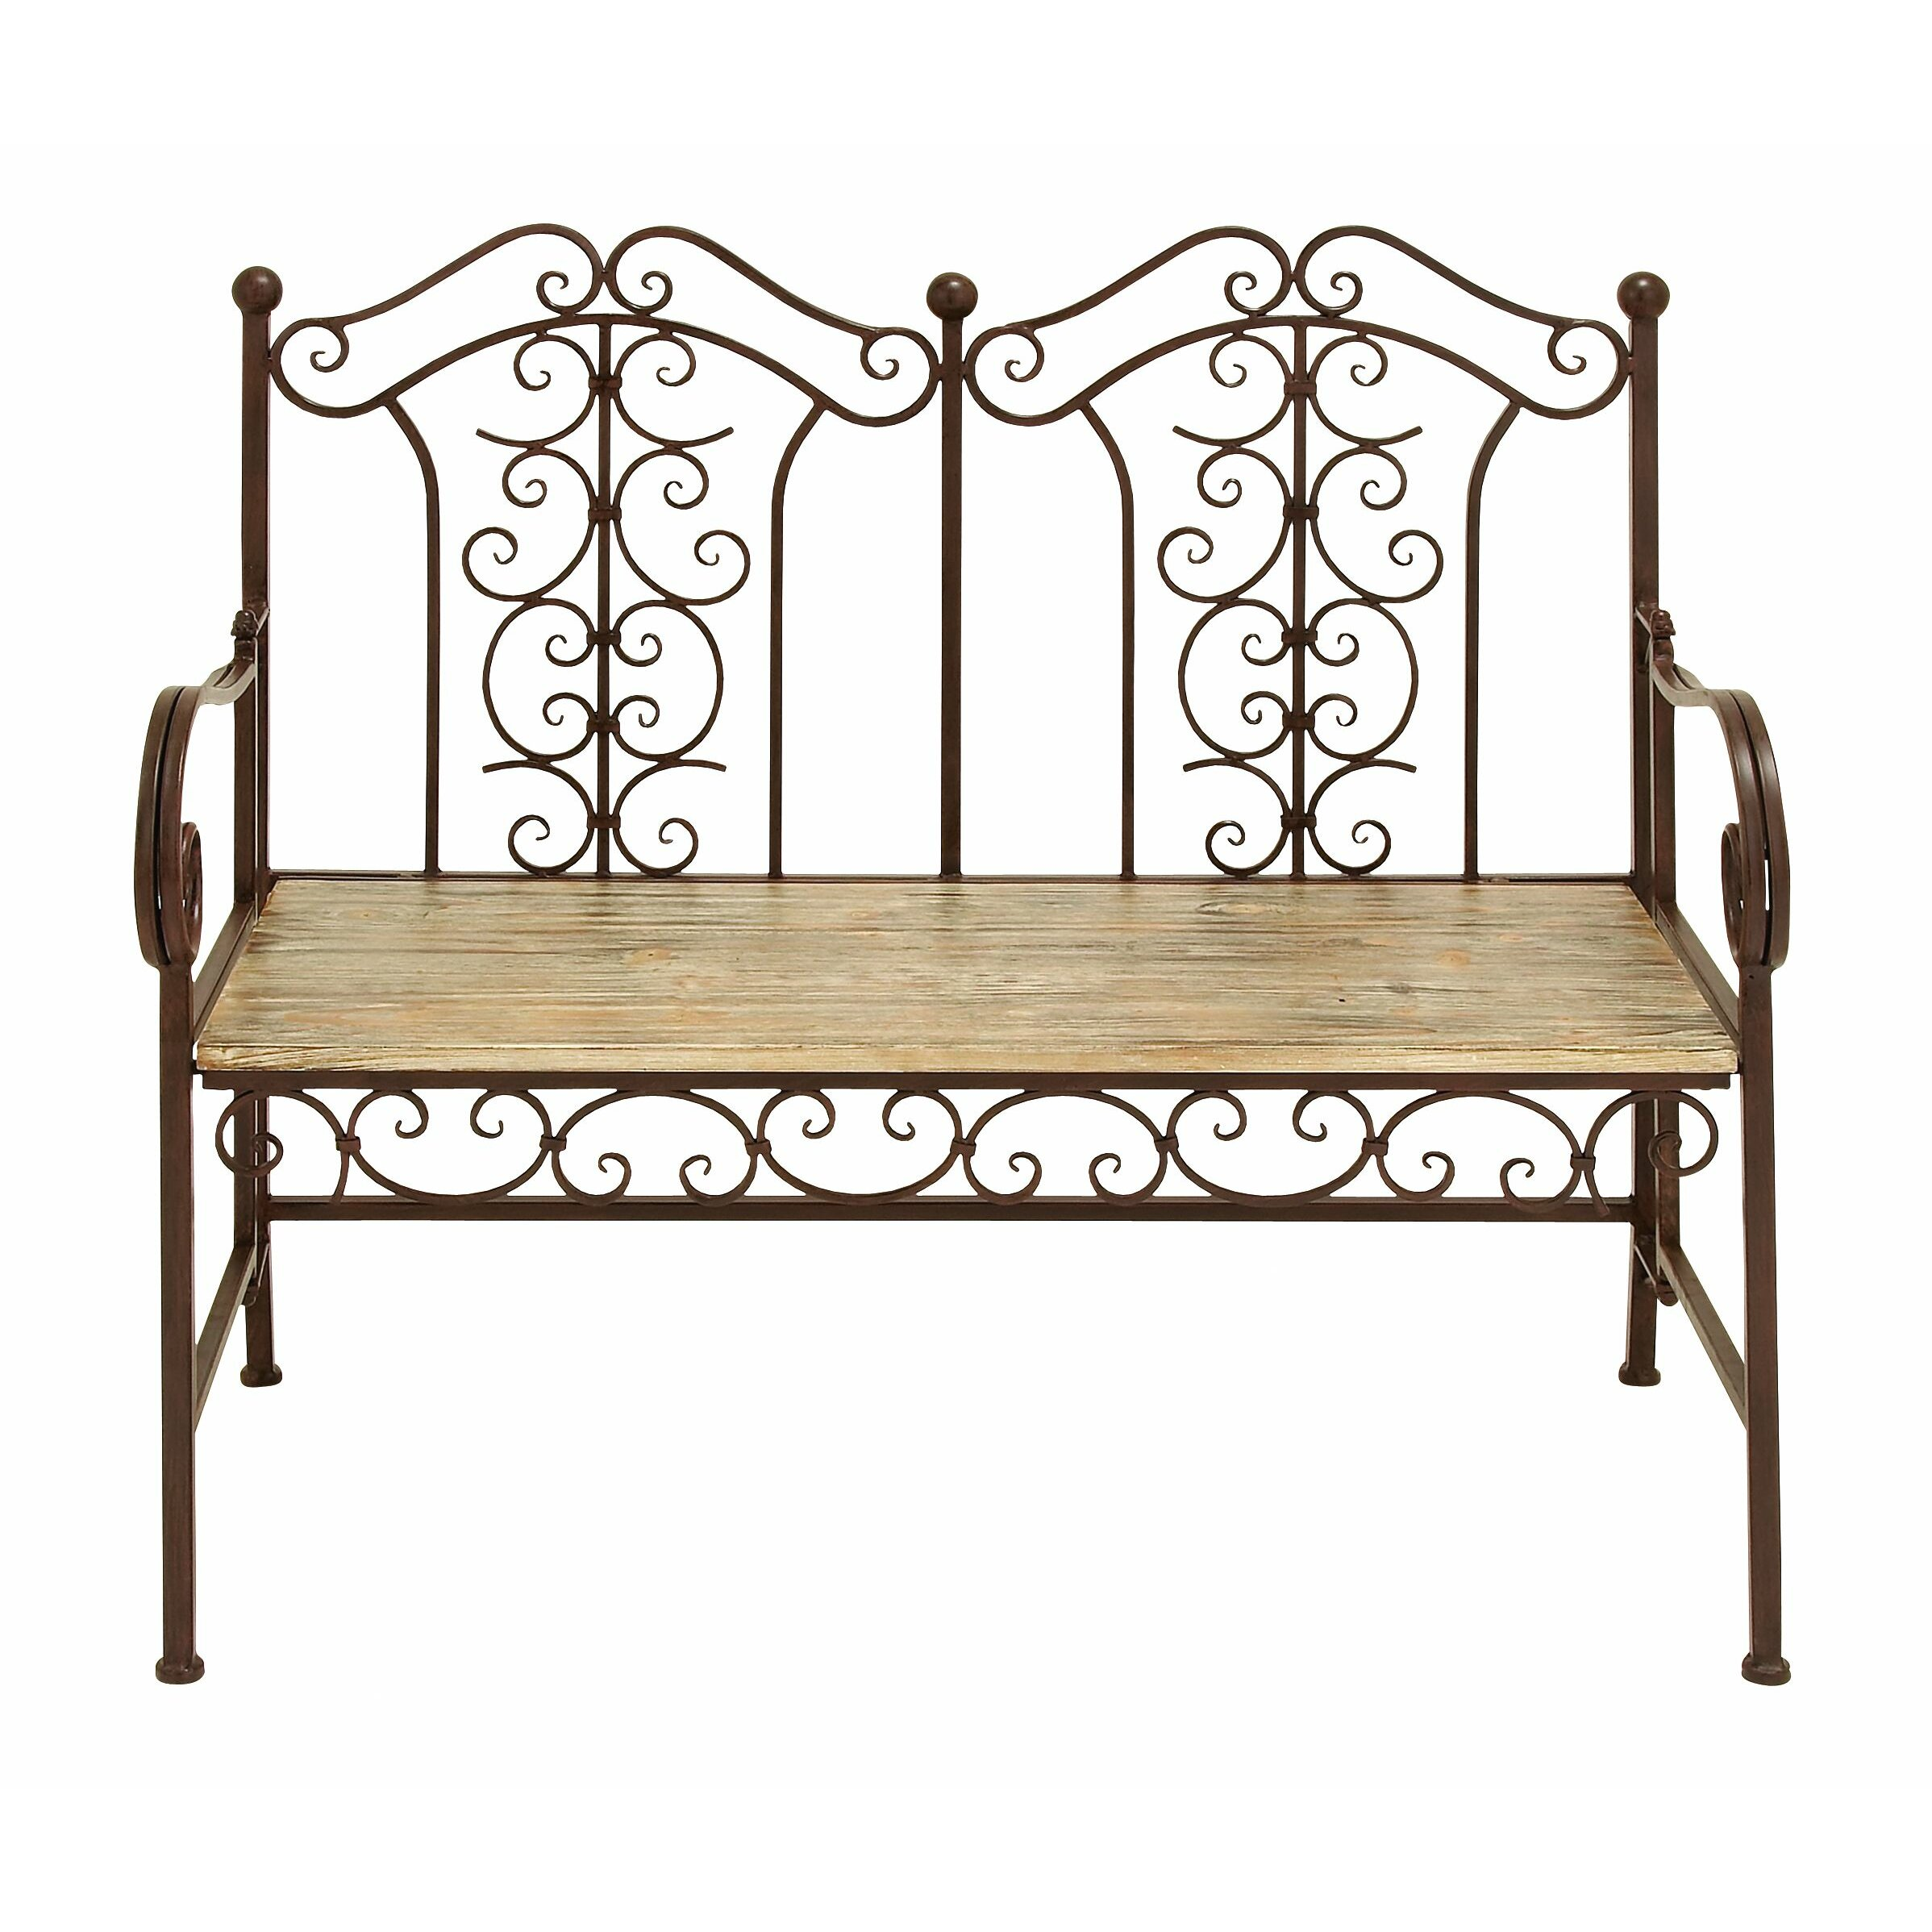 woodland imports wood and metal garden bench reviews wayfair. Black Bedroom Furniture Sets. Home Design Ideas